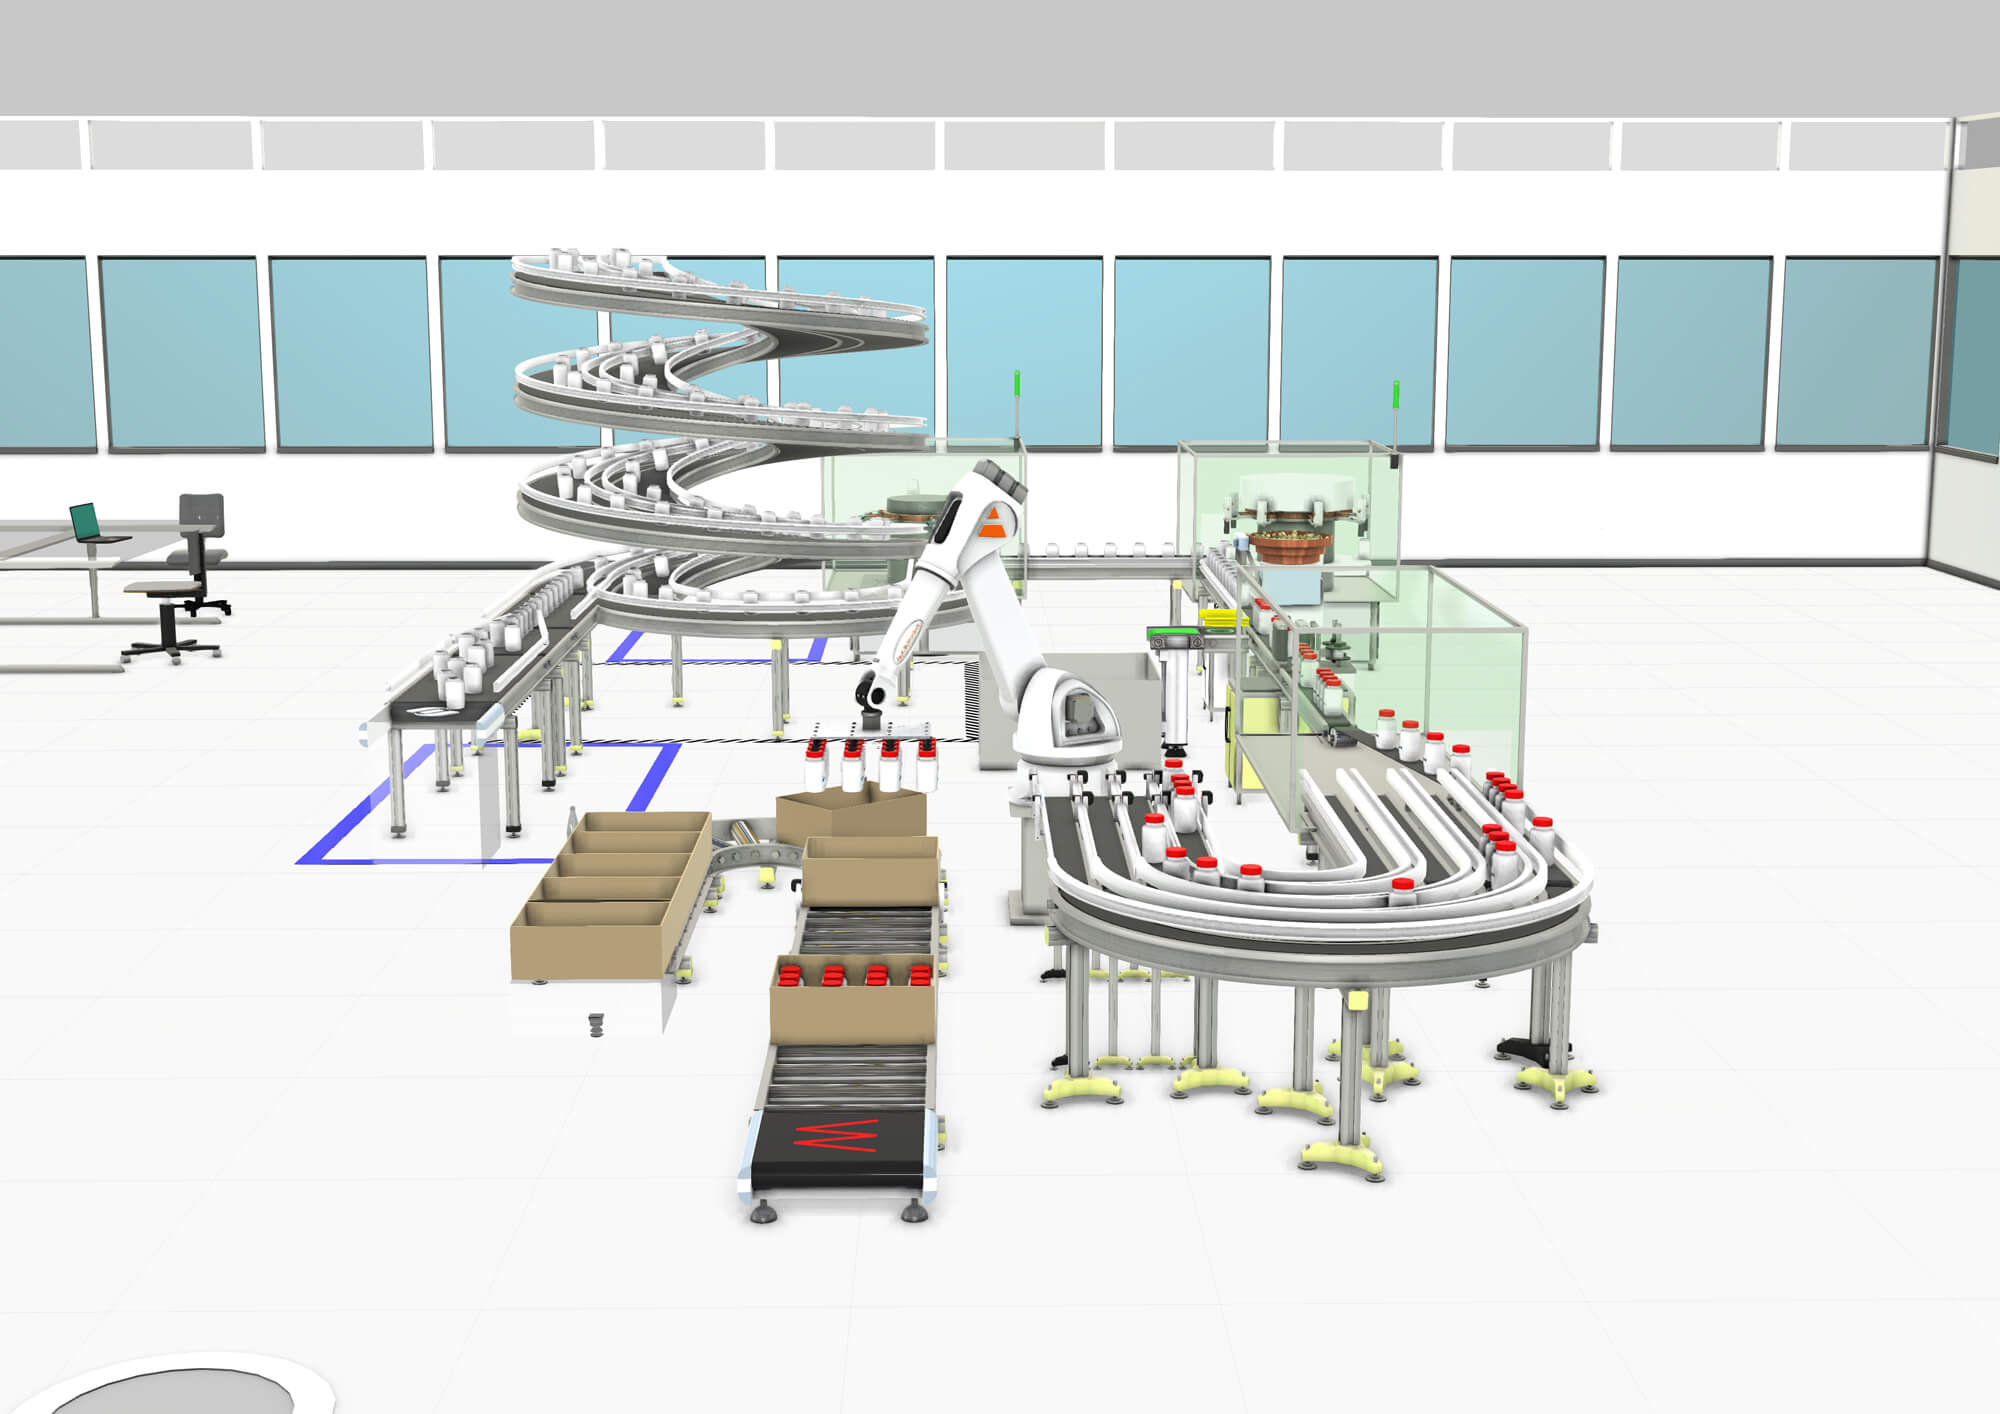 Pharmaceutical packaging line simulation